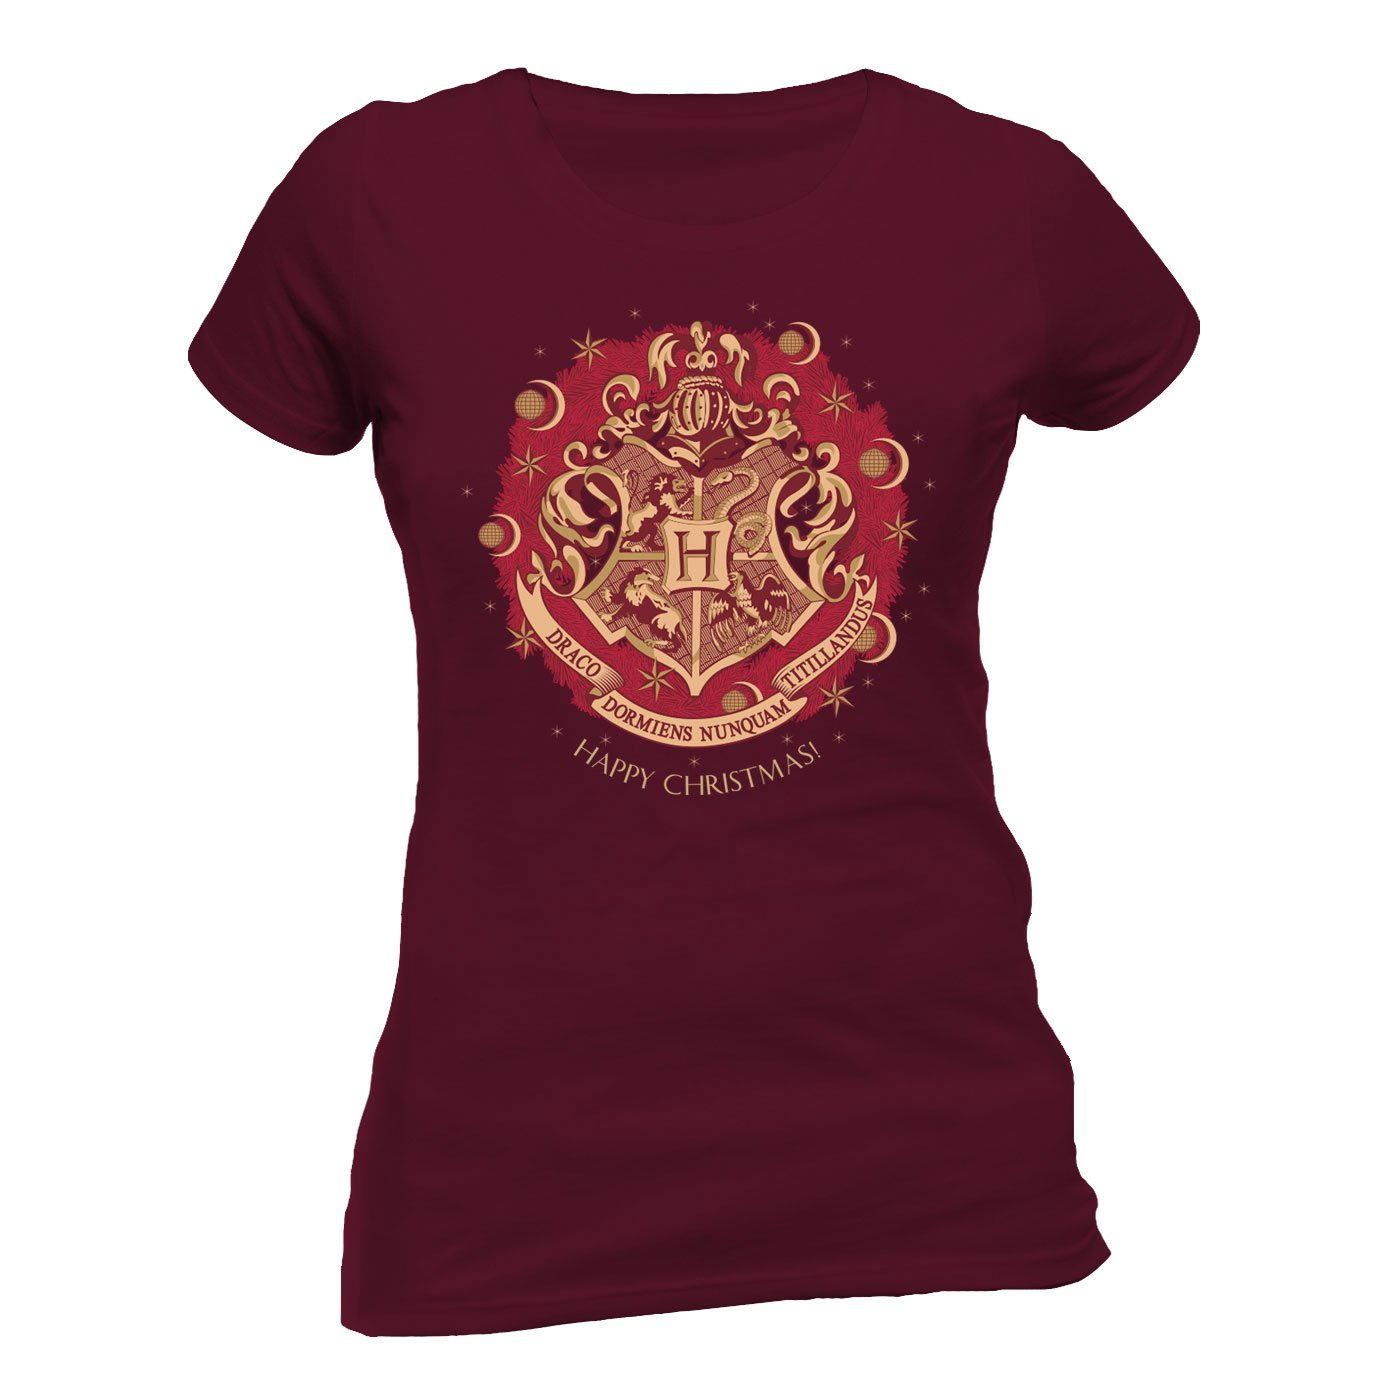 Harry Potter Ladies T-Shirt Happy Christmas Size S